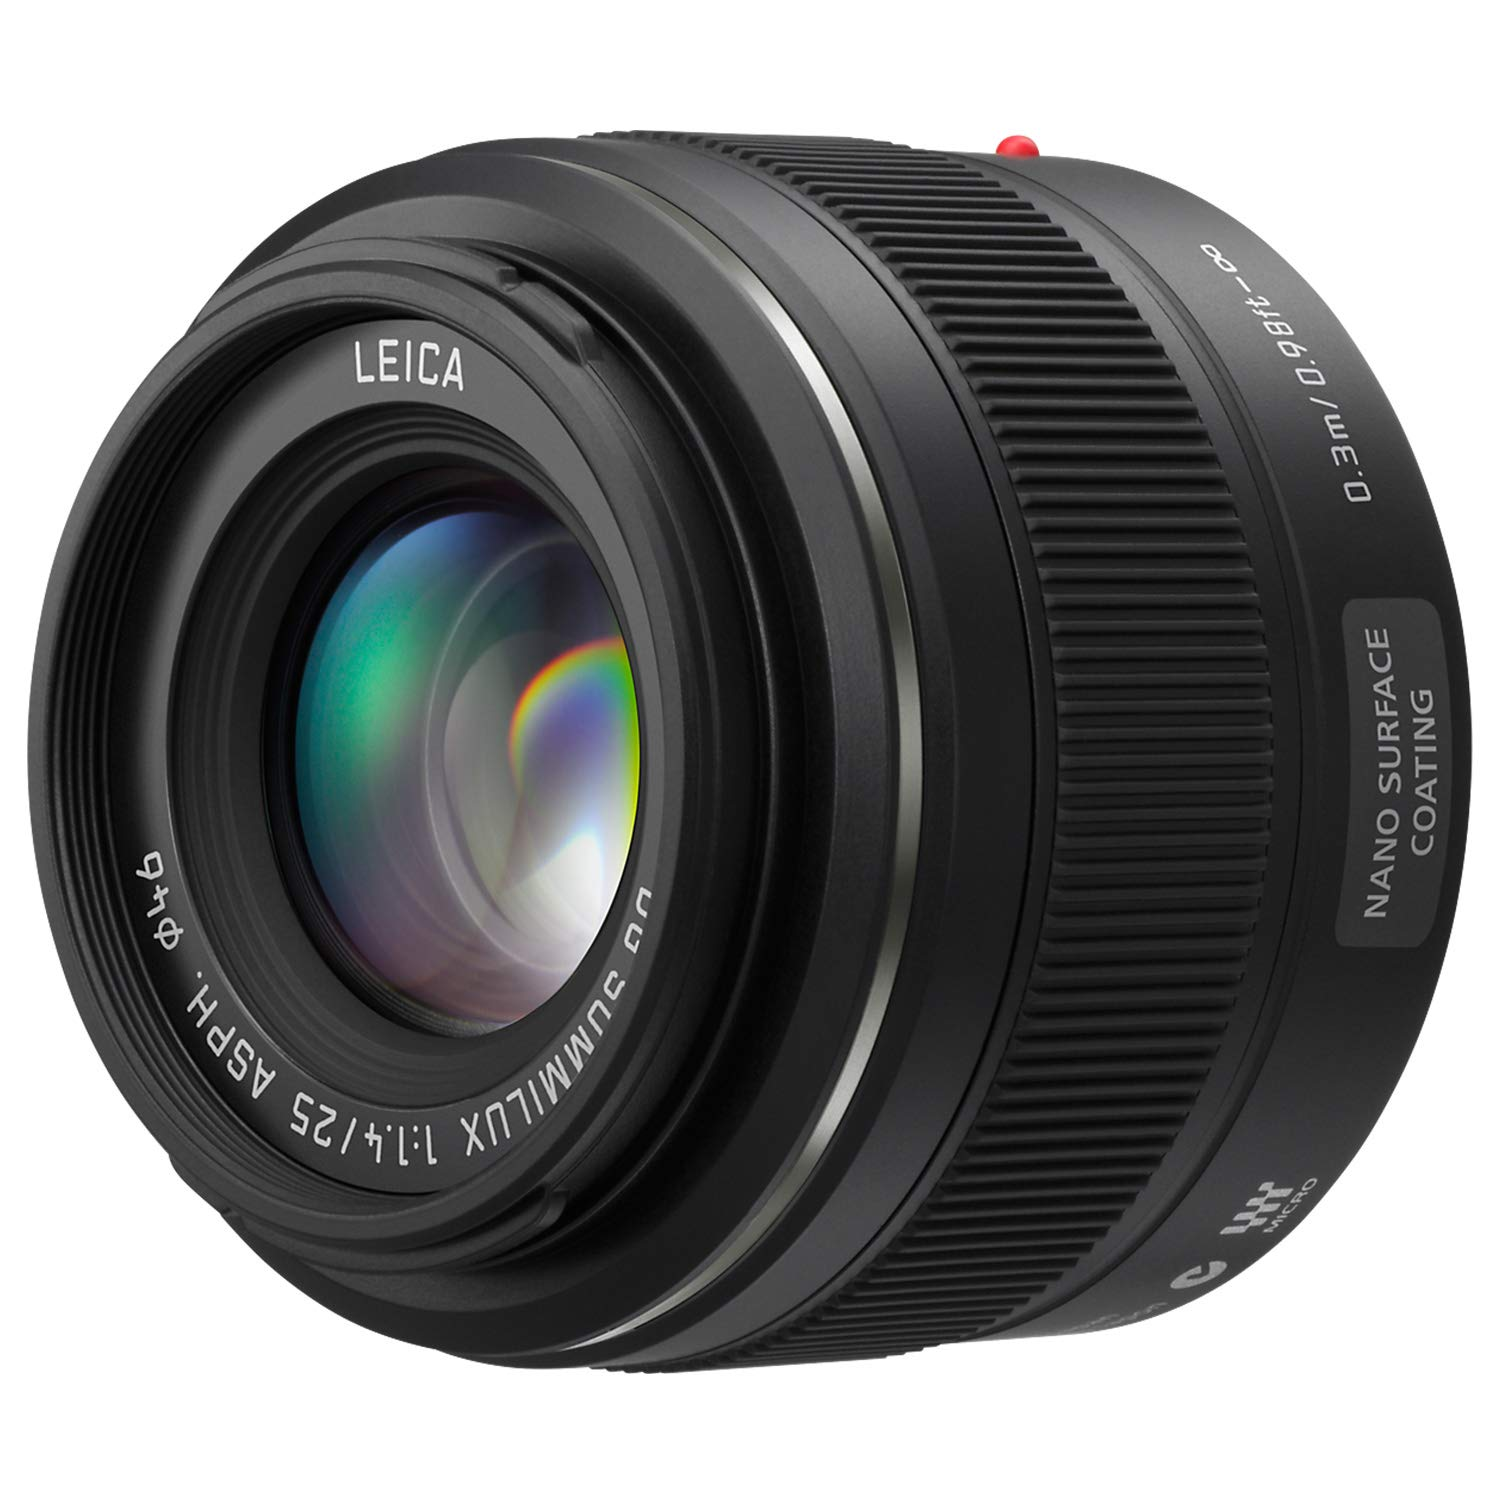 PANASONIC LUMIX G Leica DG SUMMILUX Lens, 25mm, F1.4 ASPH, Mirrorless Micro Four Thirds, H-X025 (USA Black) by Panasonic